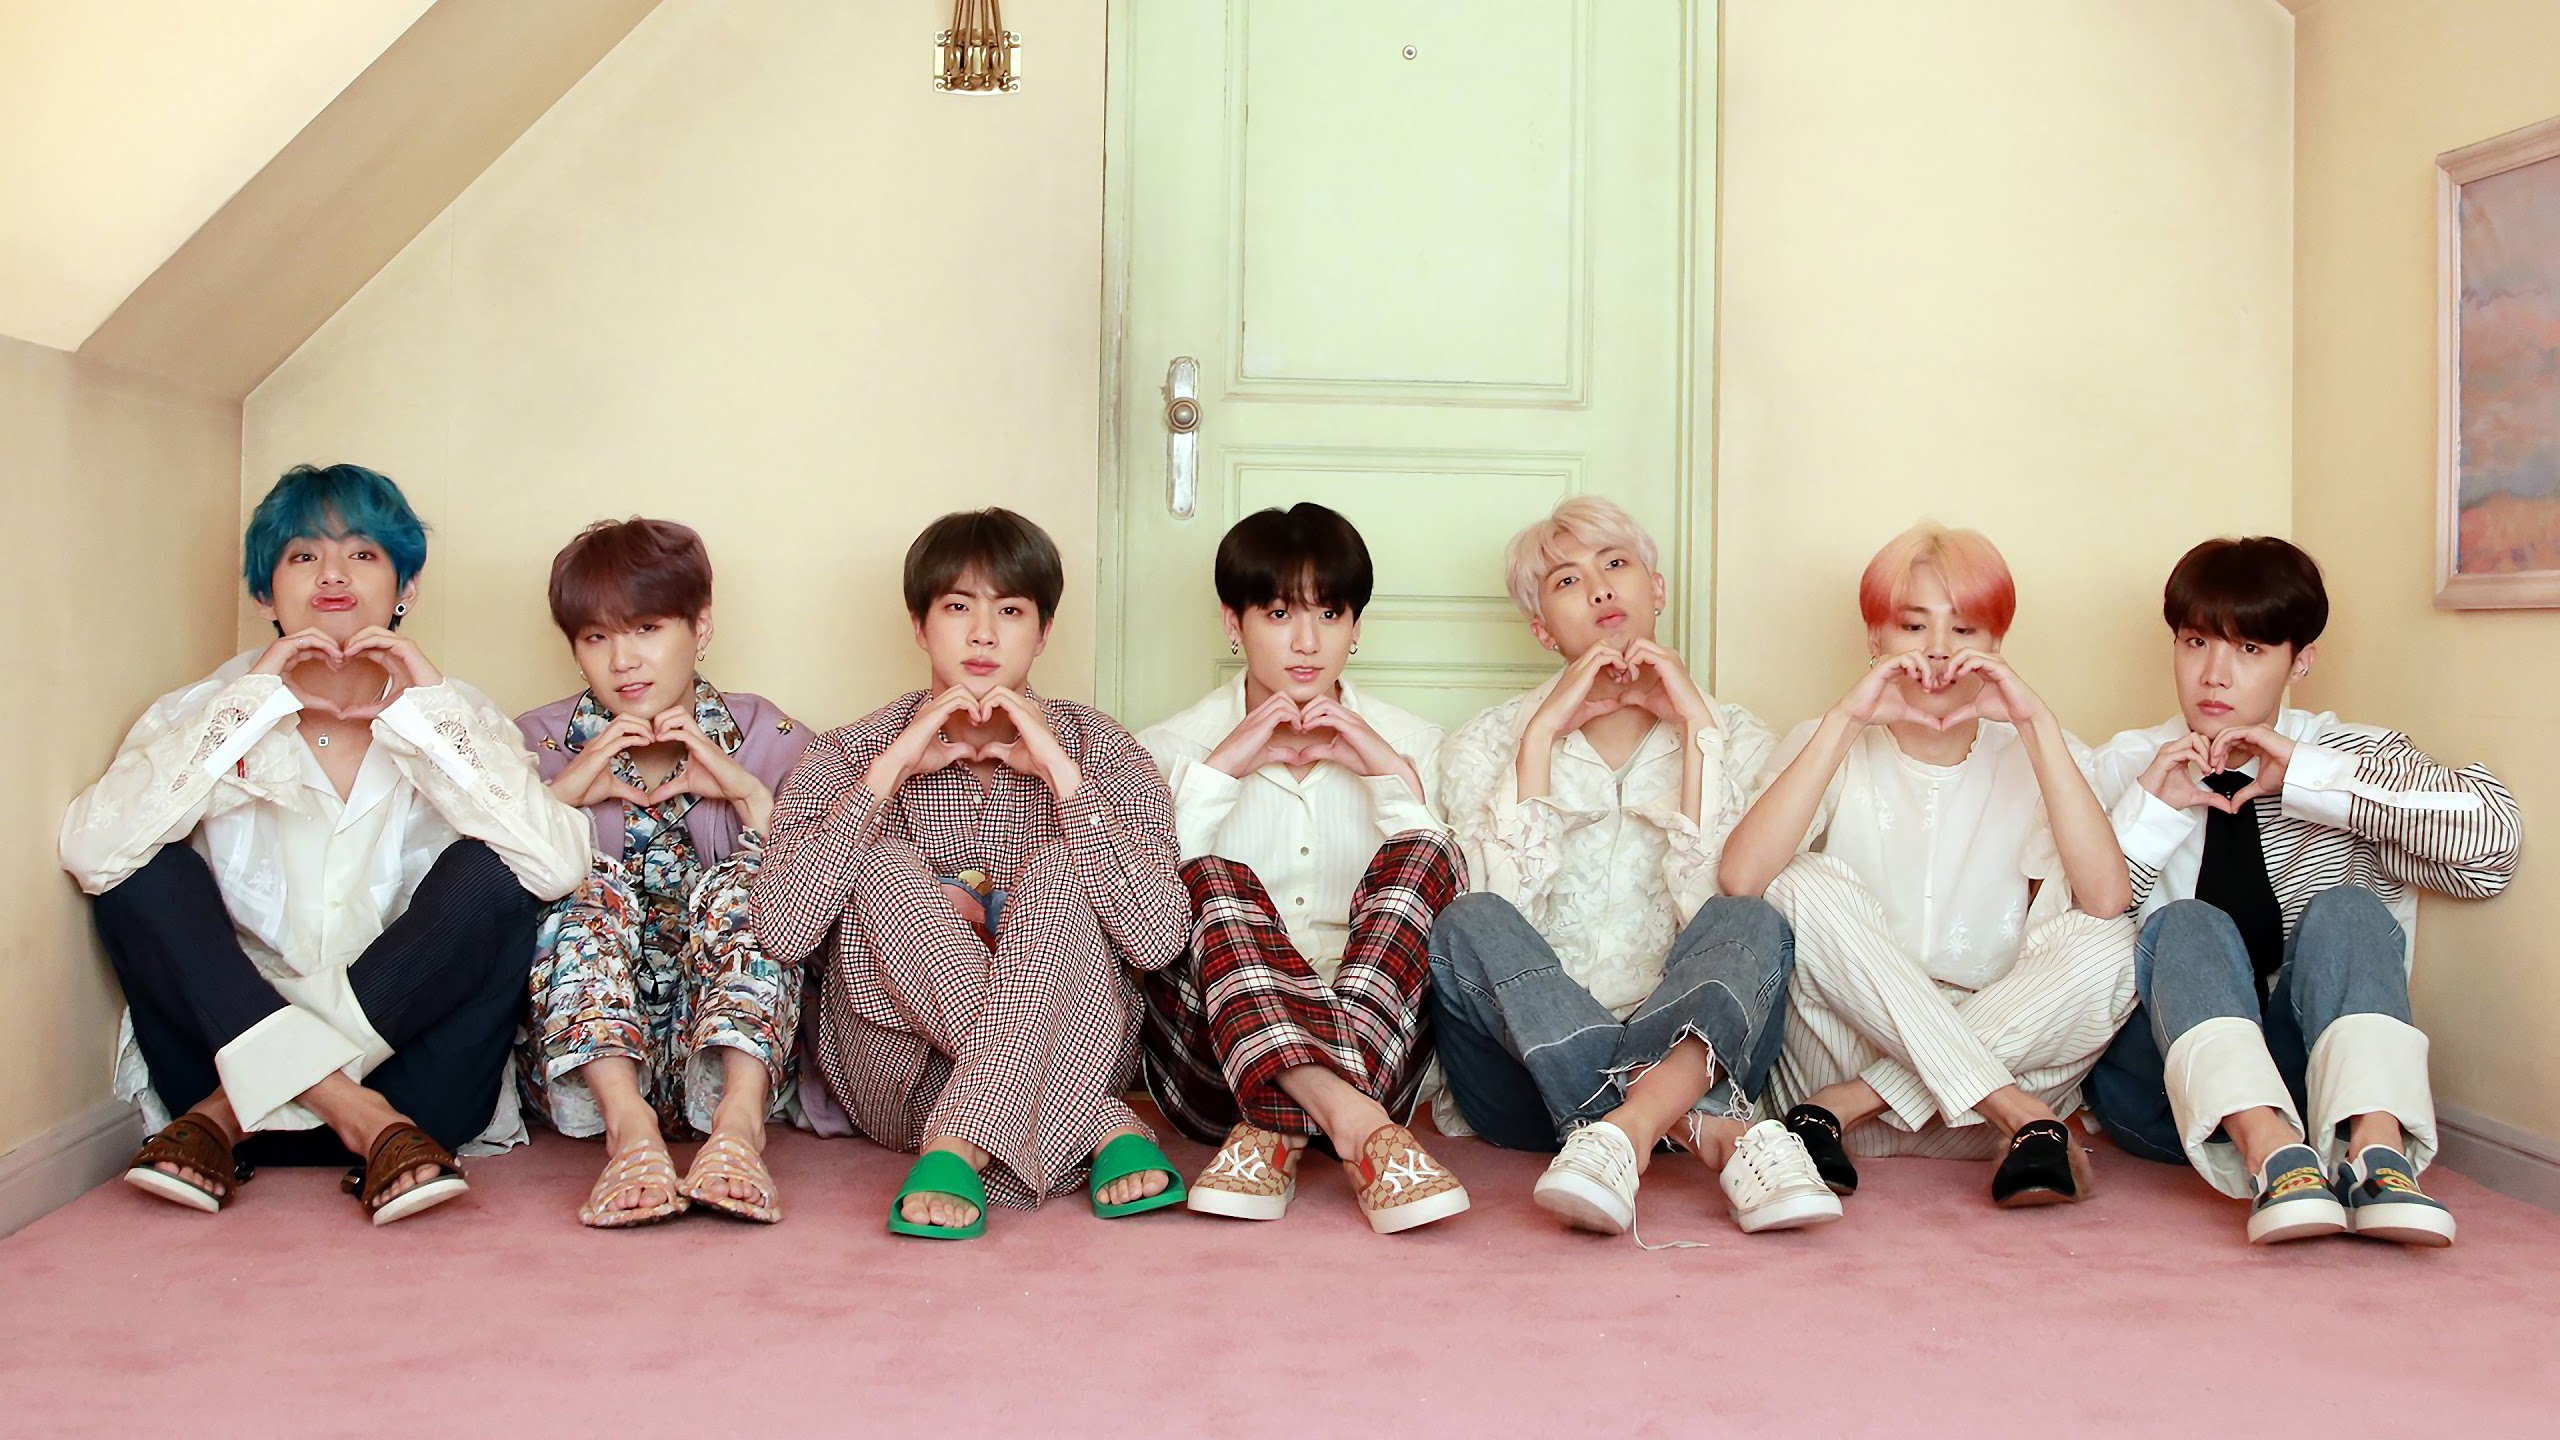 BTS Map of the Soul Persona 4K Wallpaper 75 2560x1440